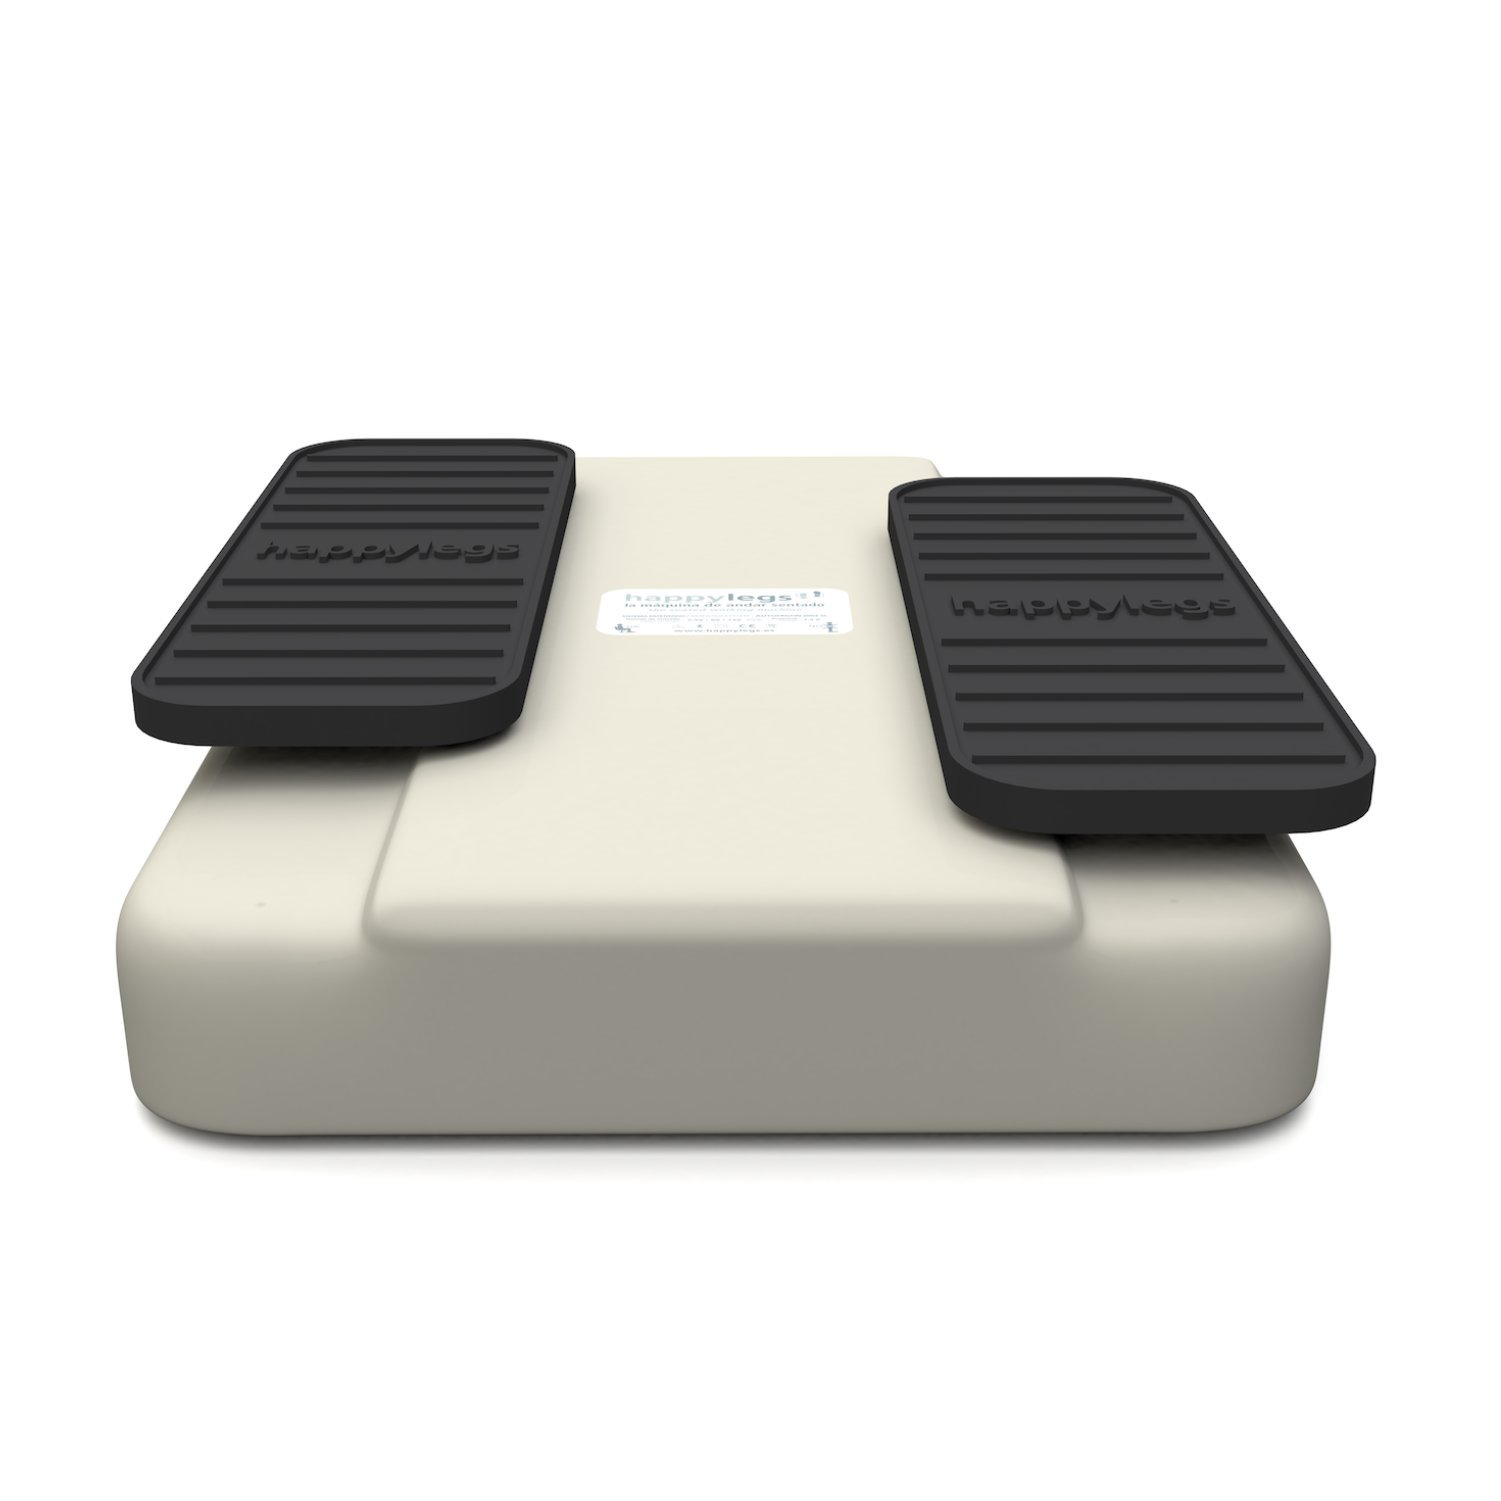 Happylegs New Model in White: The Genuine Seated Walking Machine with 3 Speeds. Official Patented System, made in Spain and registered by the FDA.